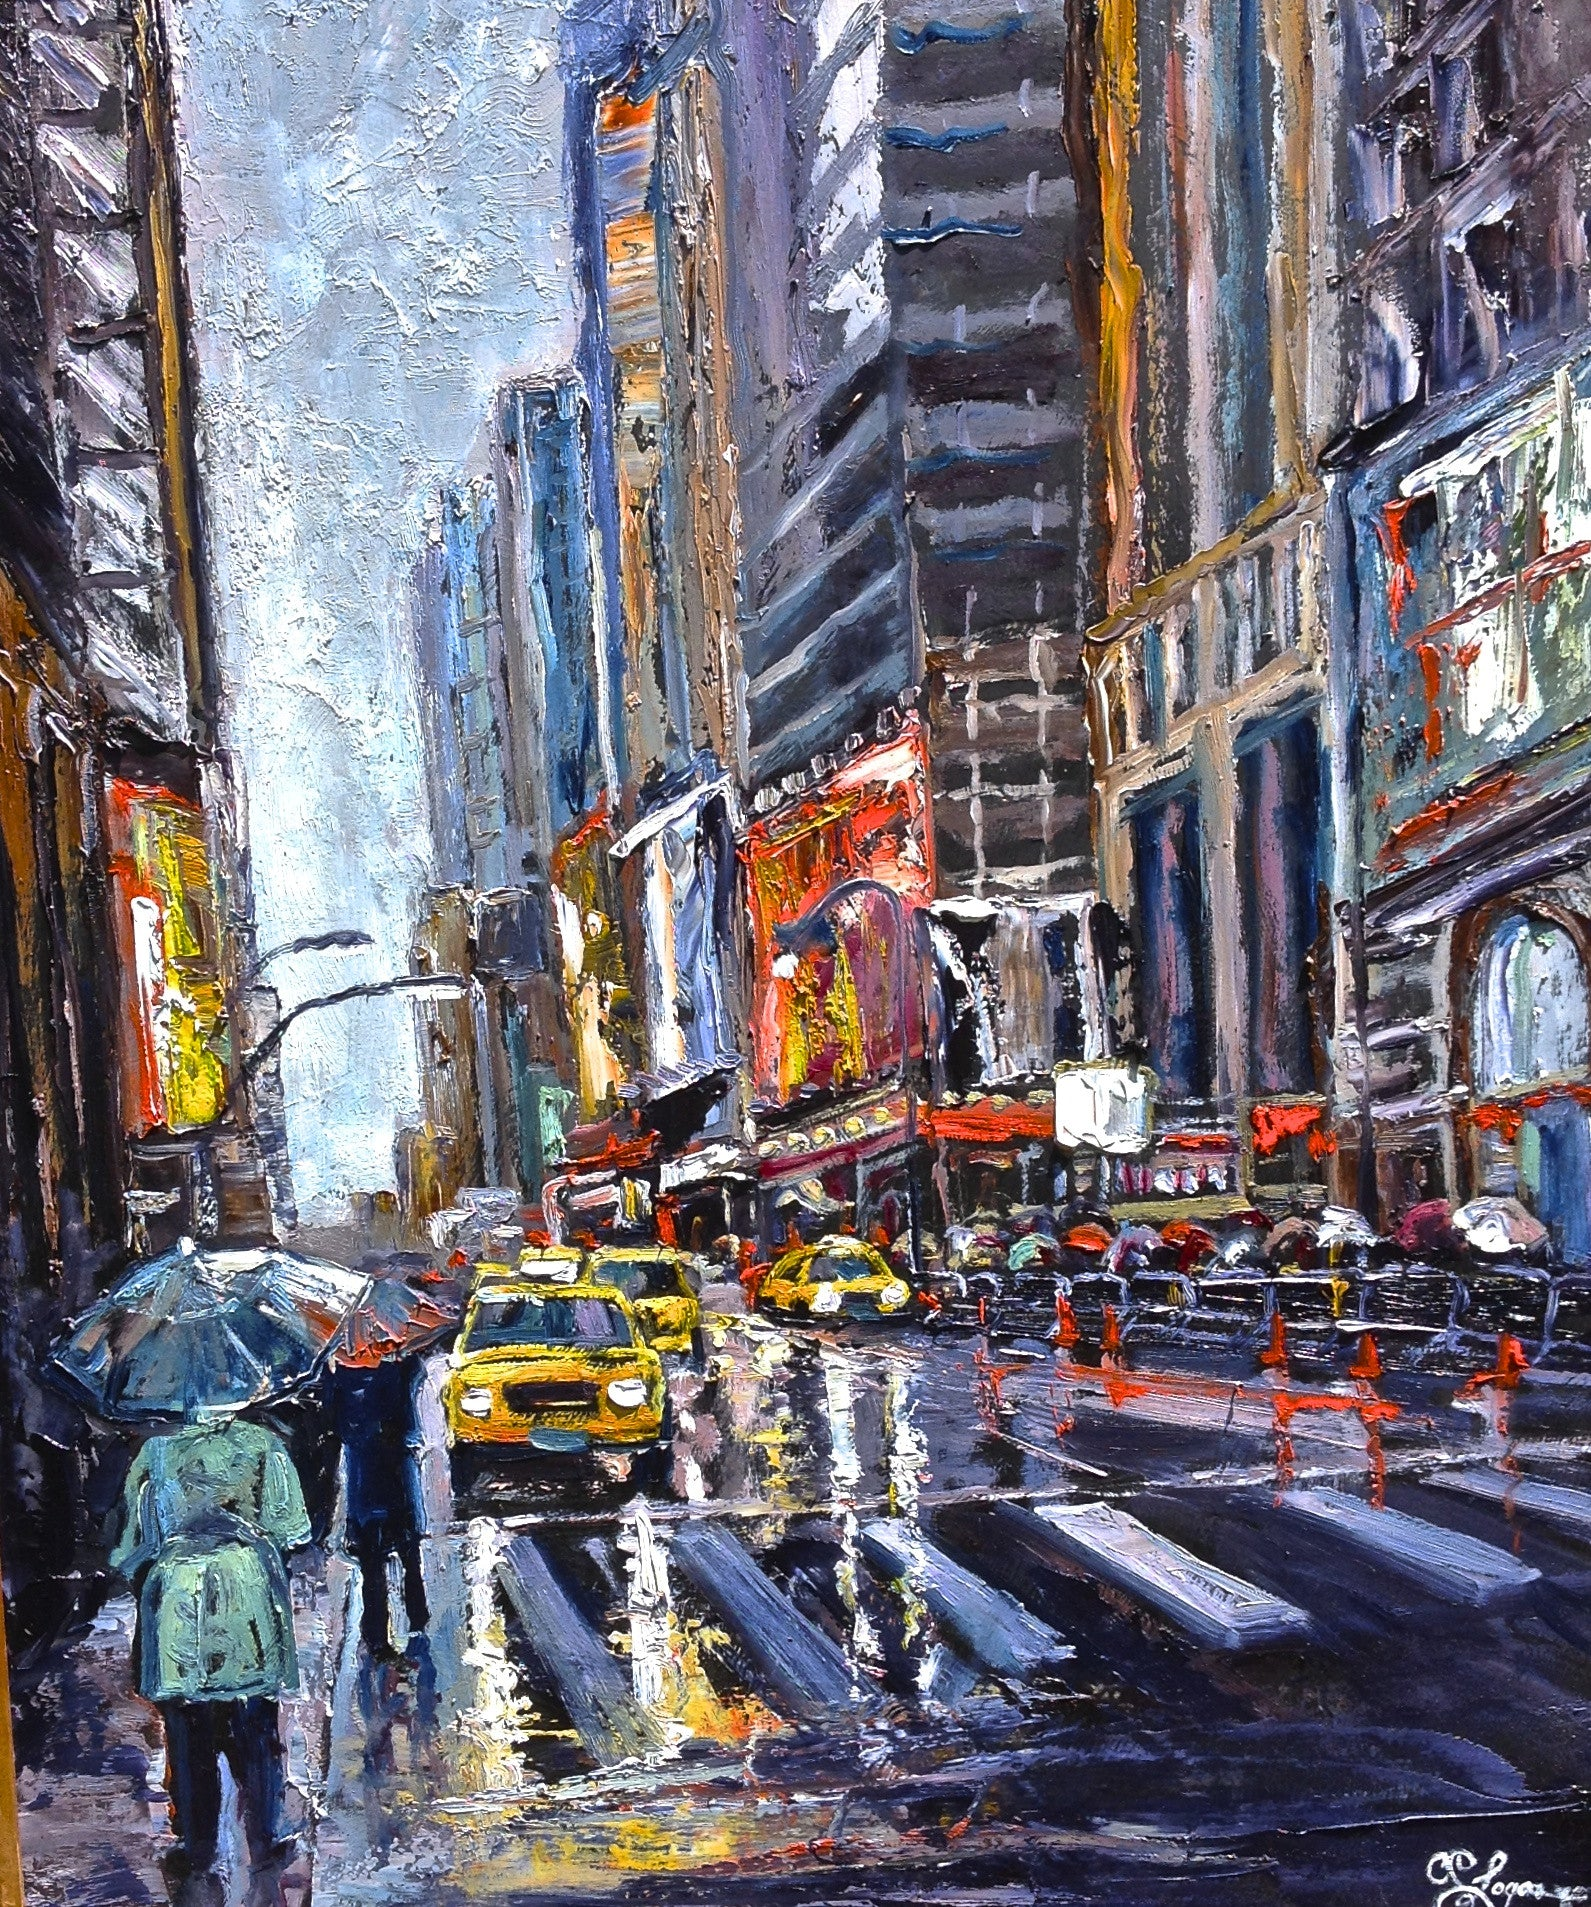 Rainy Day Reflections - 28 x 22 SOLD